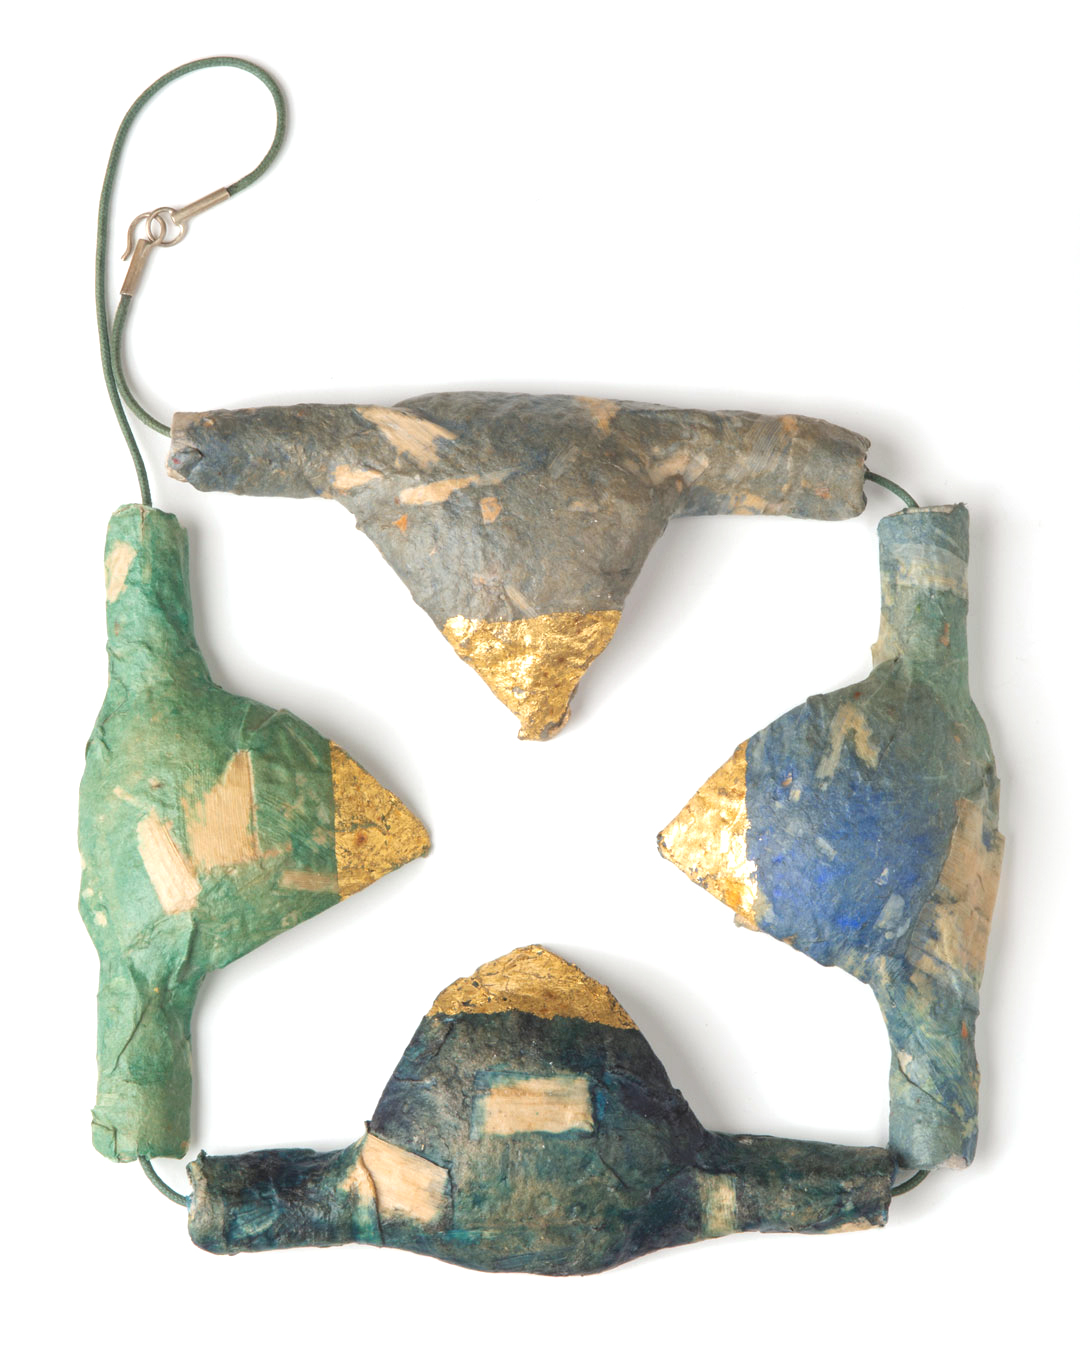 Margit Jäschke, untitled, 1991, necklace; paper, gold leaf, cord, 380 x 240 x 25, €3400